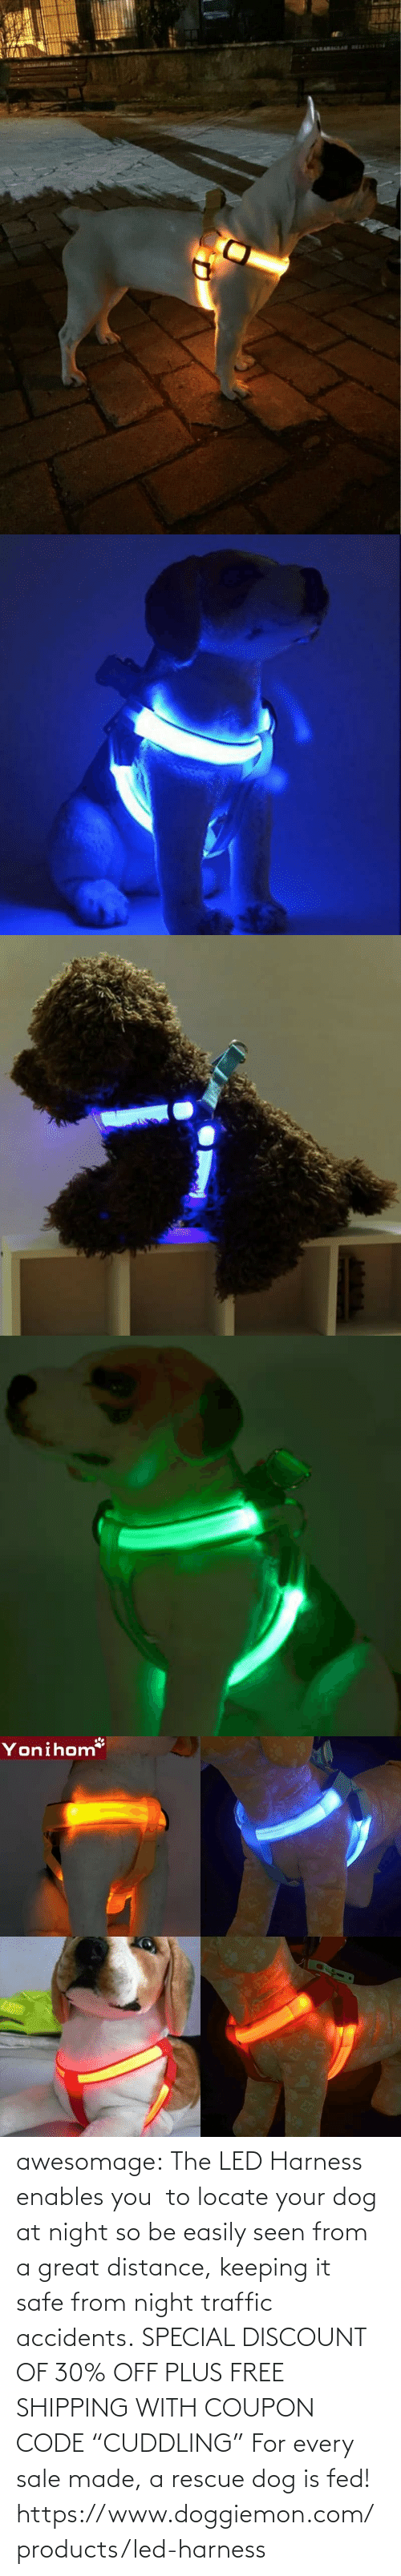 "Ex: A1KAMAGLAR RELERVS  BILIRALLAN JOI   Yonihom  E3  X1  EX awesomage:   The LED Harness enables you  to locate your dog at night so be easily seen from a great distance, keeping it safe from night traffic accidents. SPECIAL DISCOUNT OF 30% OFF PLUS FREE SHIPPING WITH COUPON CODE ""CUDDLING"" For every sale made, a rescue dog is fed!   https://www.doggiemon.com/products/led-harness"